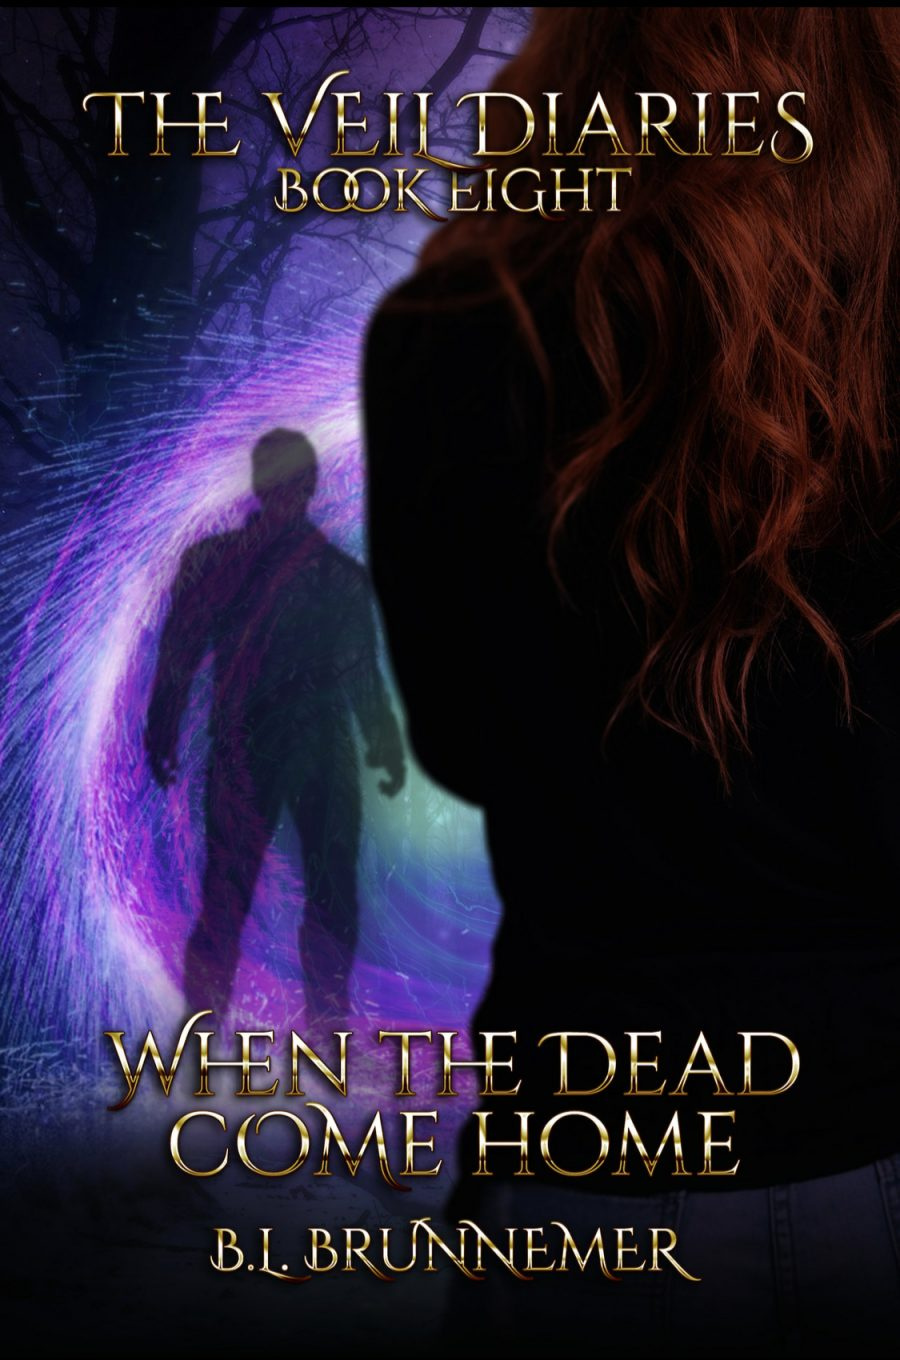 When the Dead Come Home (The Veil Diaries - Book 8) by B.L. Brunnemer - A Book Review #BookReview #SlowBurn #RH #PNR #NA #NotKU